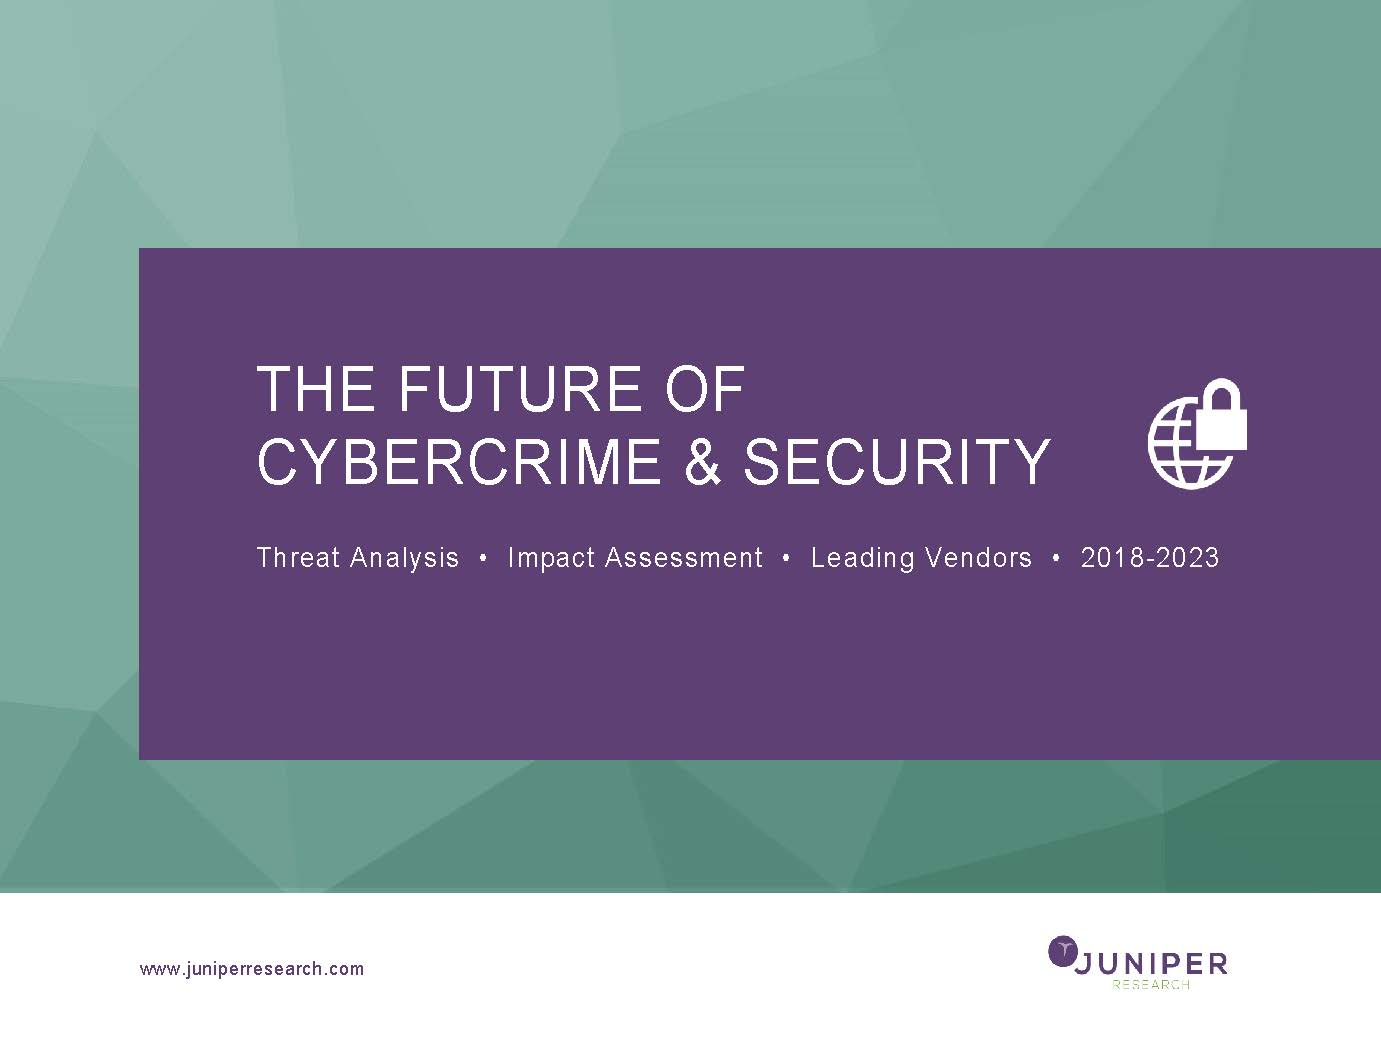 The Future of Cybercrime & Security: Threat Analysis, Impact Assessment & Leading Vendors 2018-2023